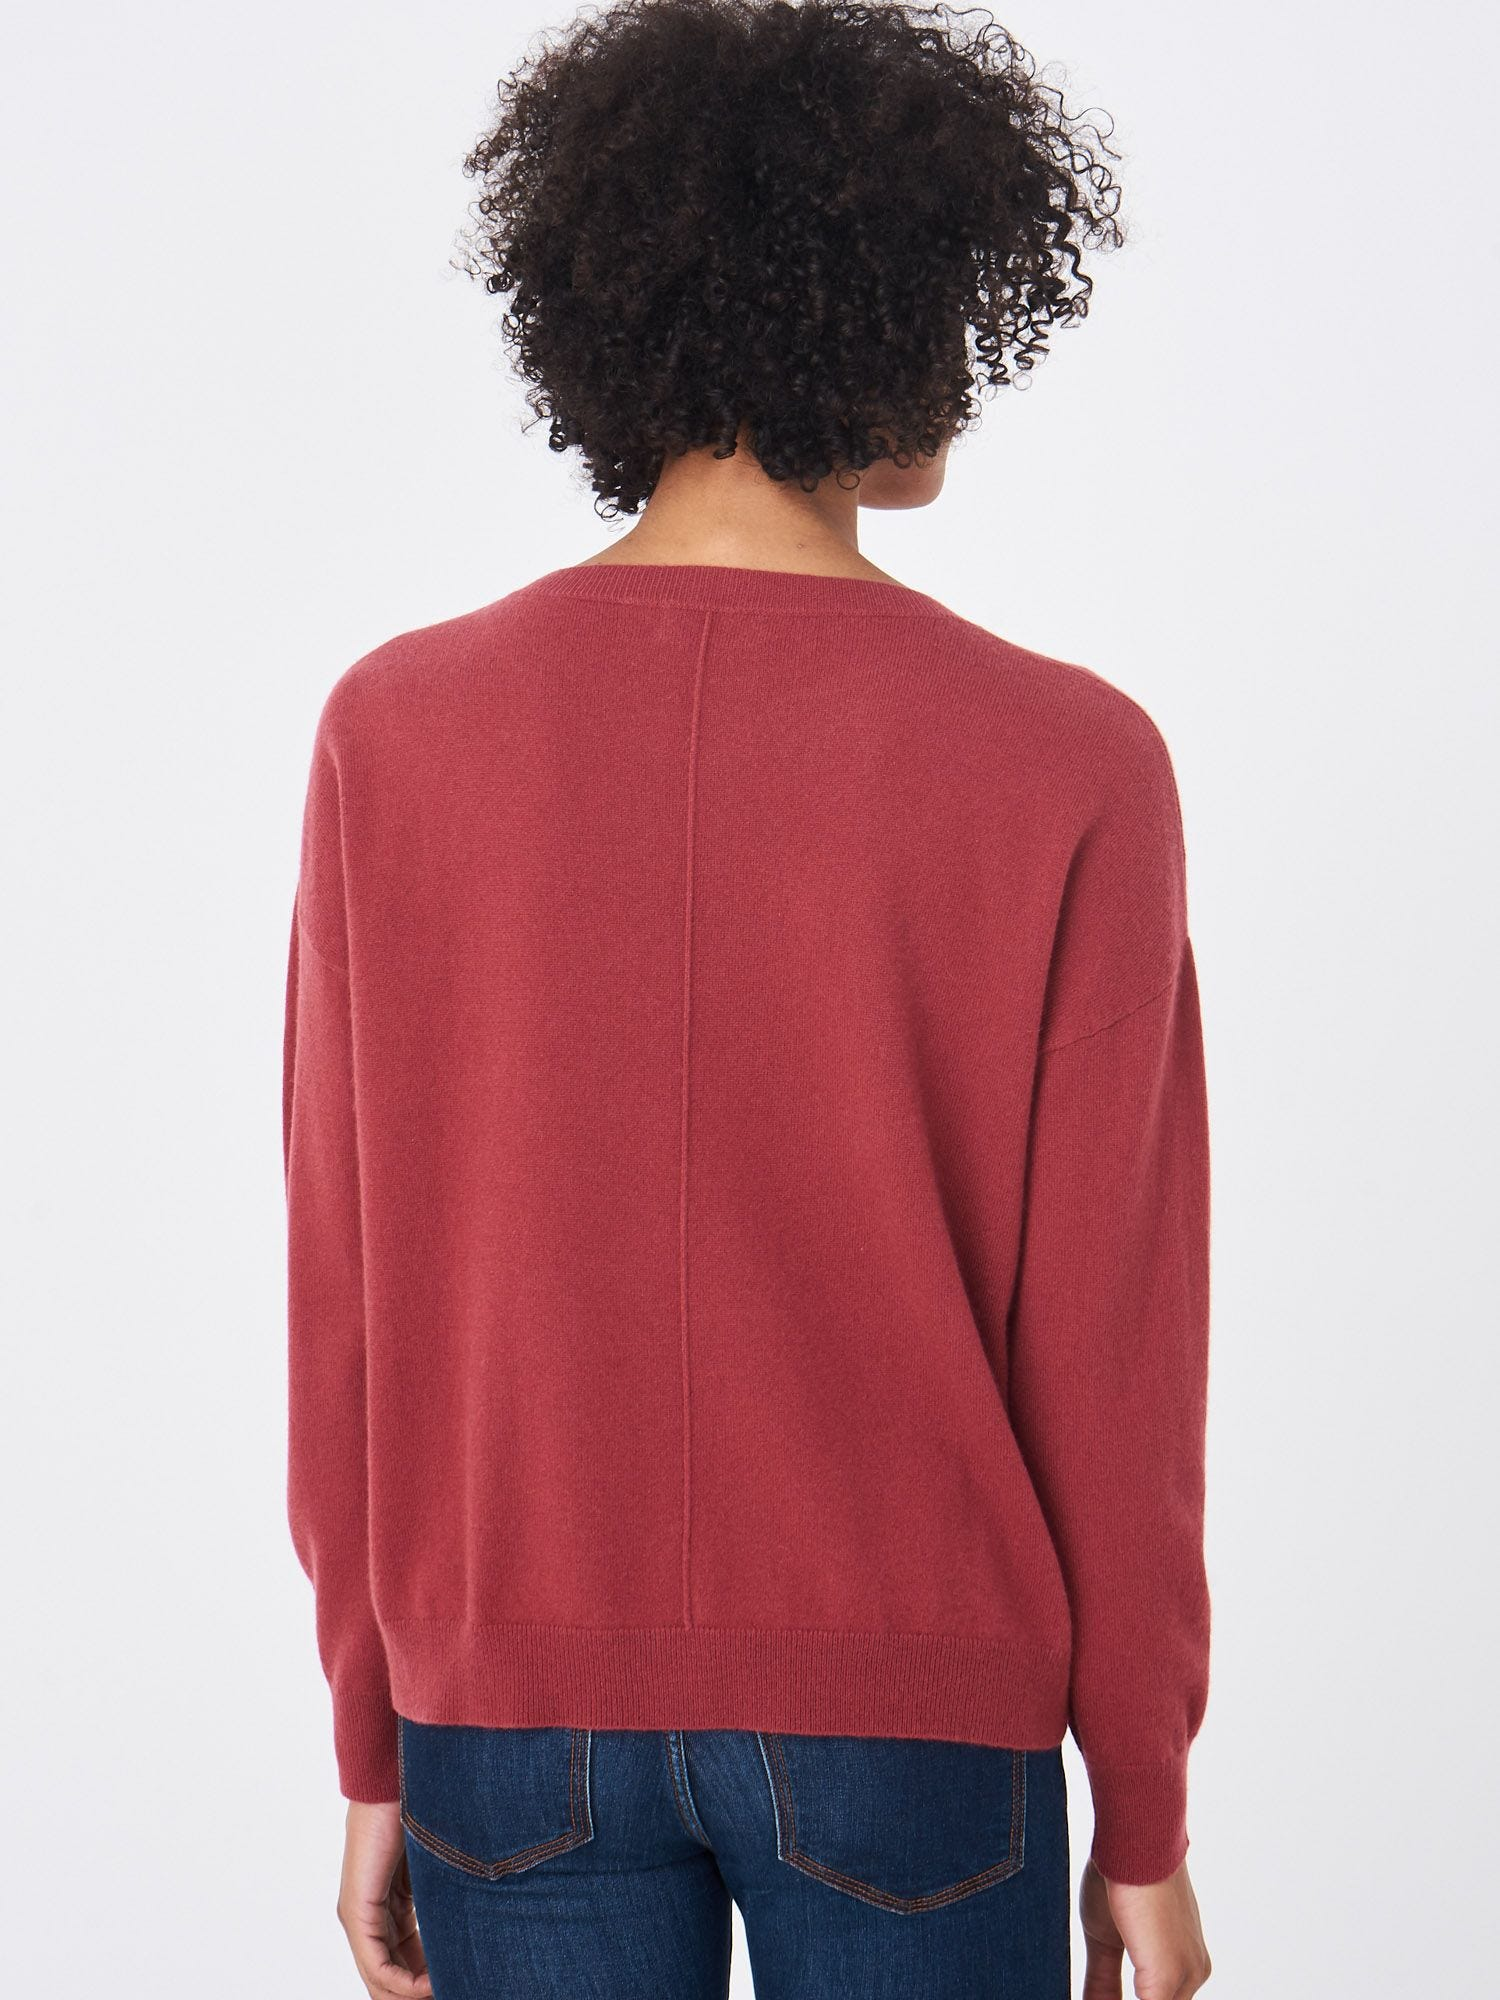 Red Cashmere Boxy Cropped Sweater